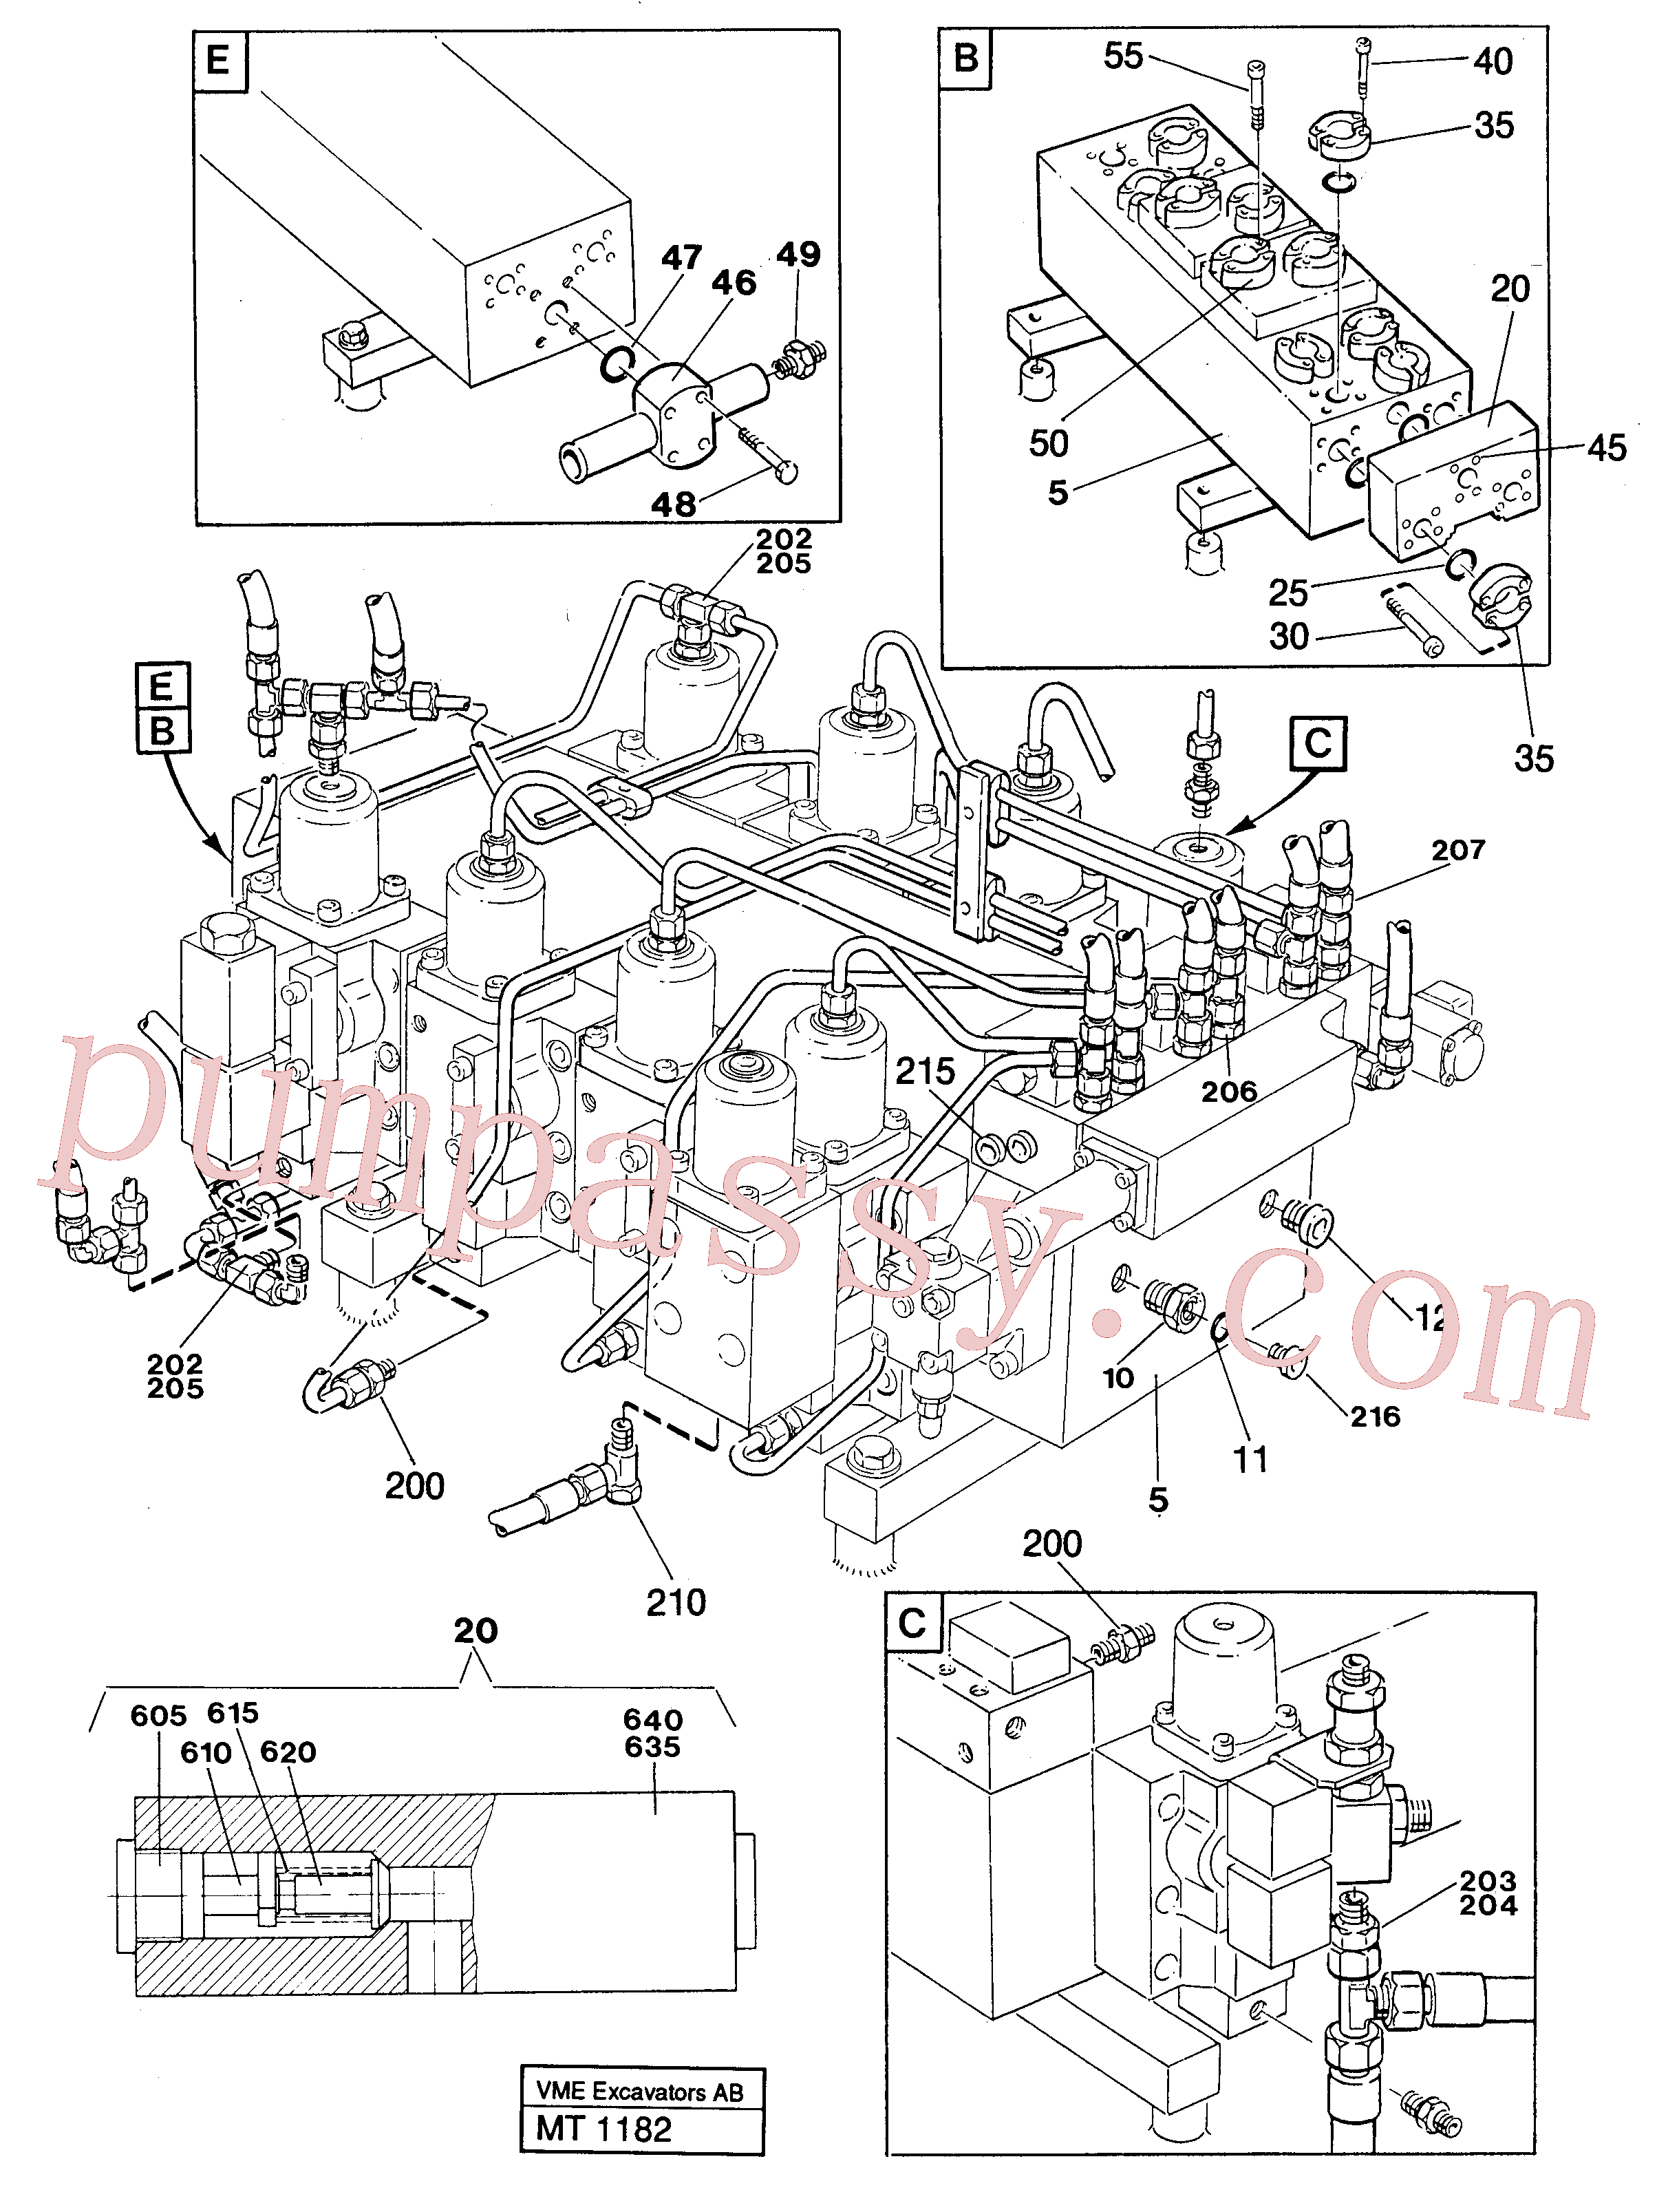 ZM2810961 for Volvo Main valve assembly with connections(MT1182 assembly)